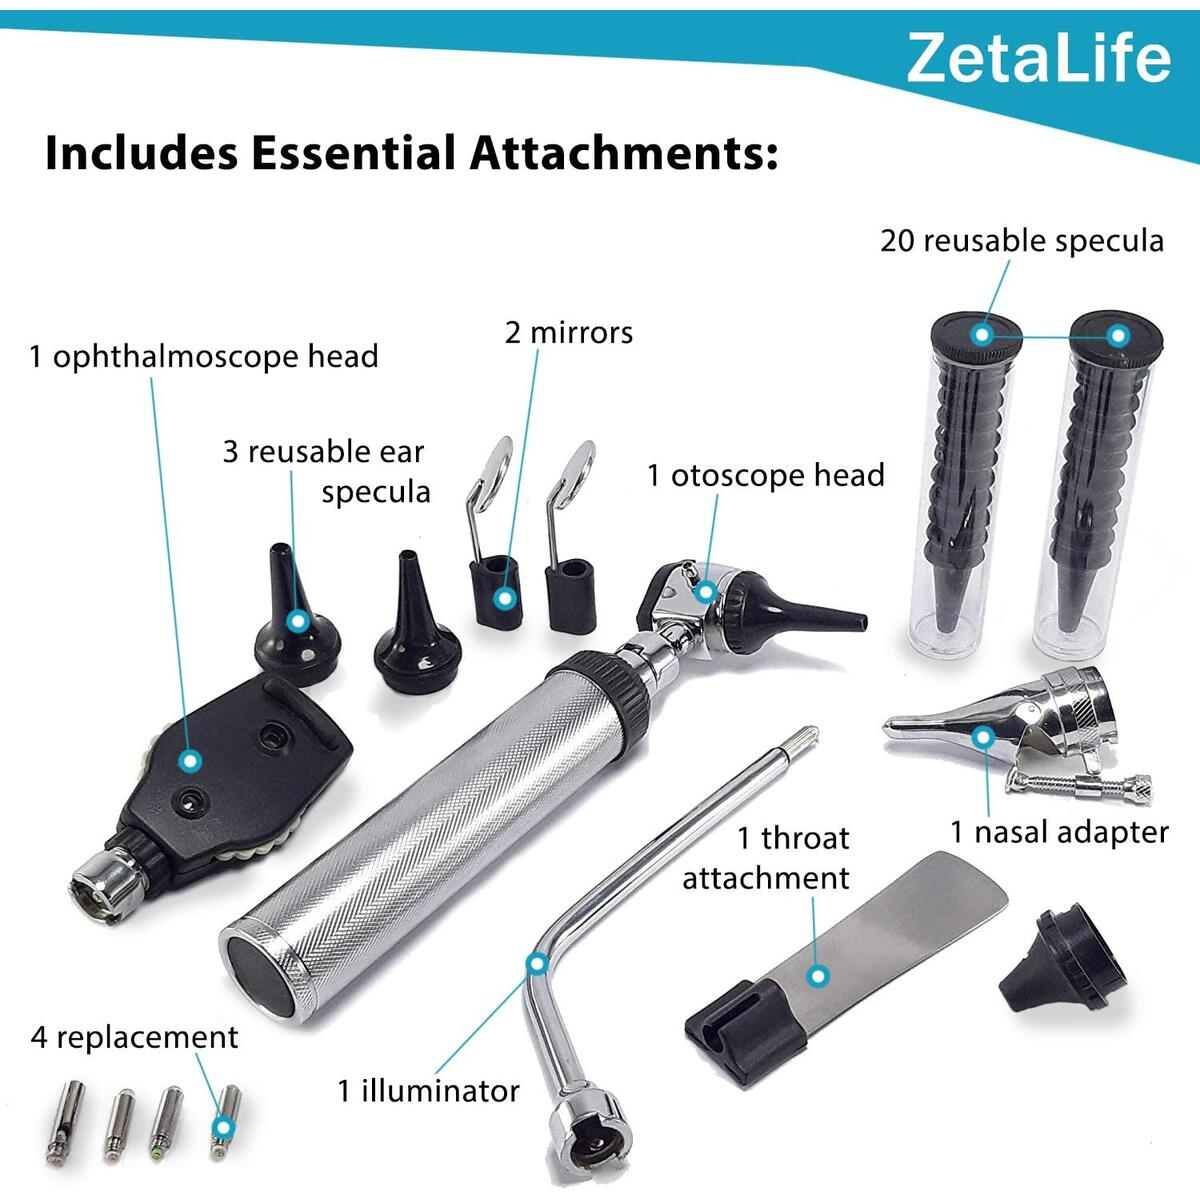 ZetaLife Diagnostic Set - Ear, Nose and Eye Exam at Home (Protect from COVID)